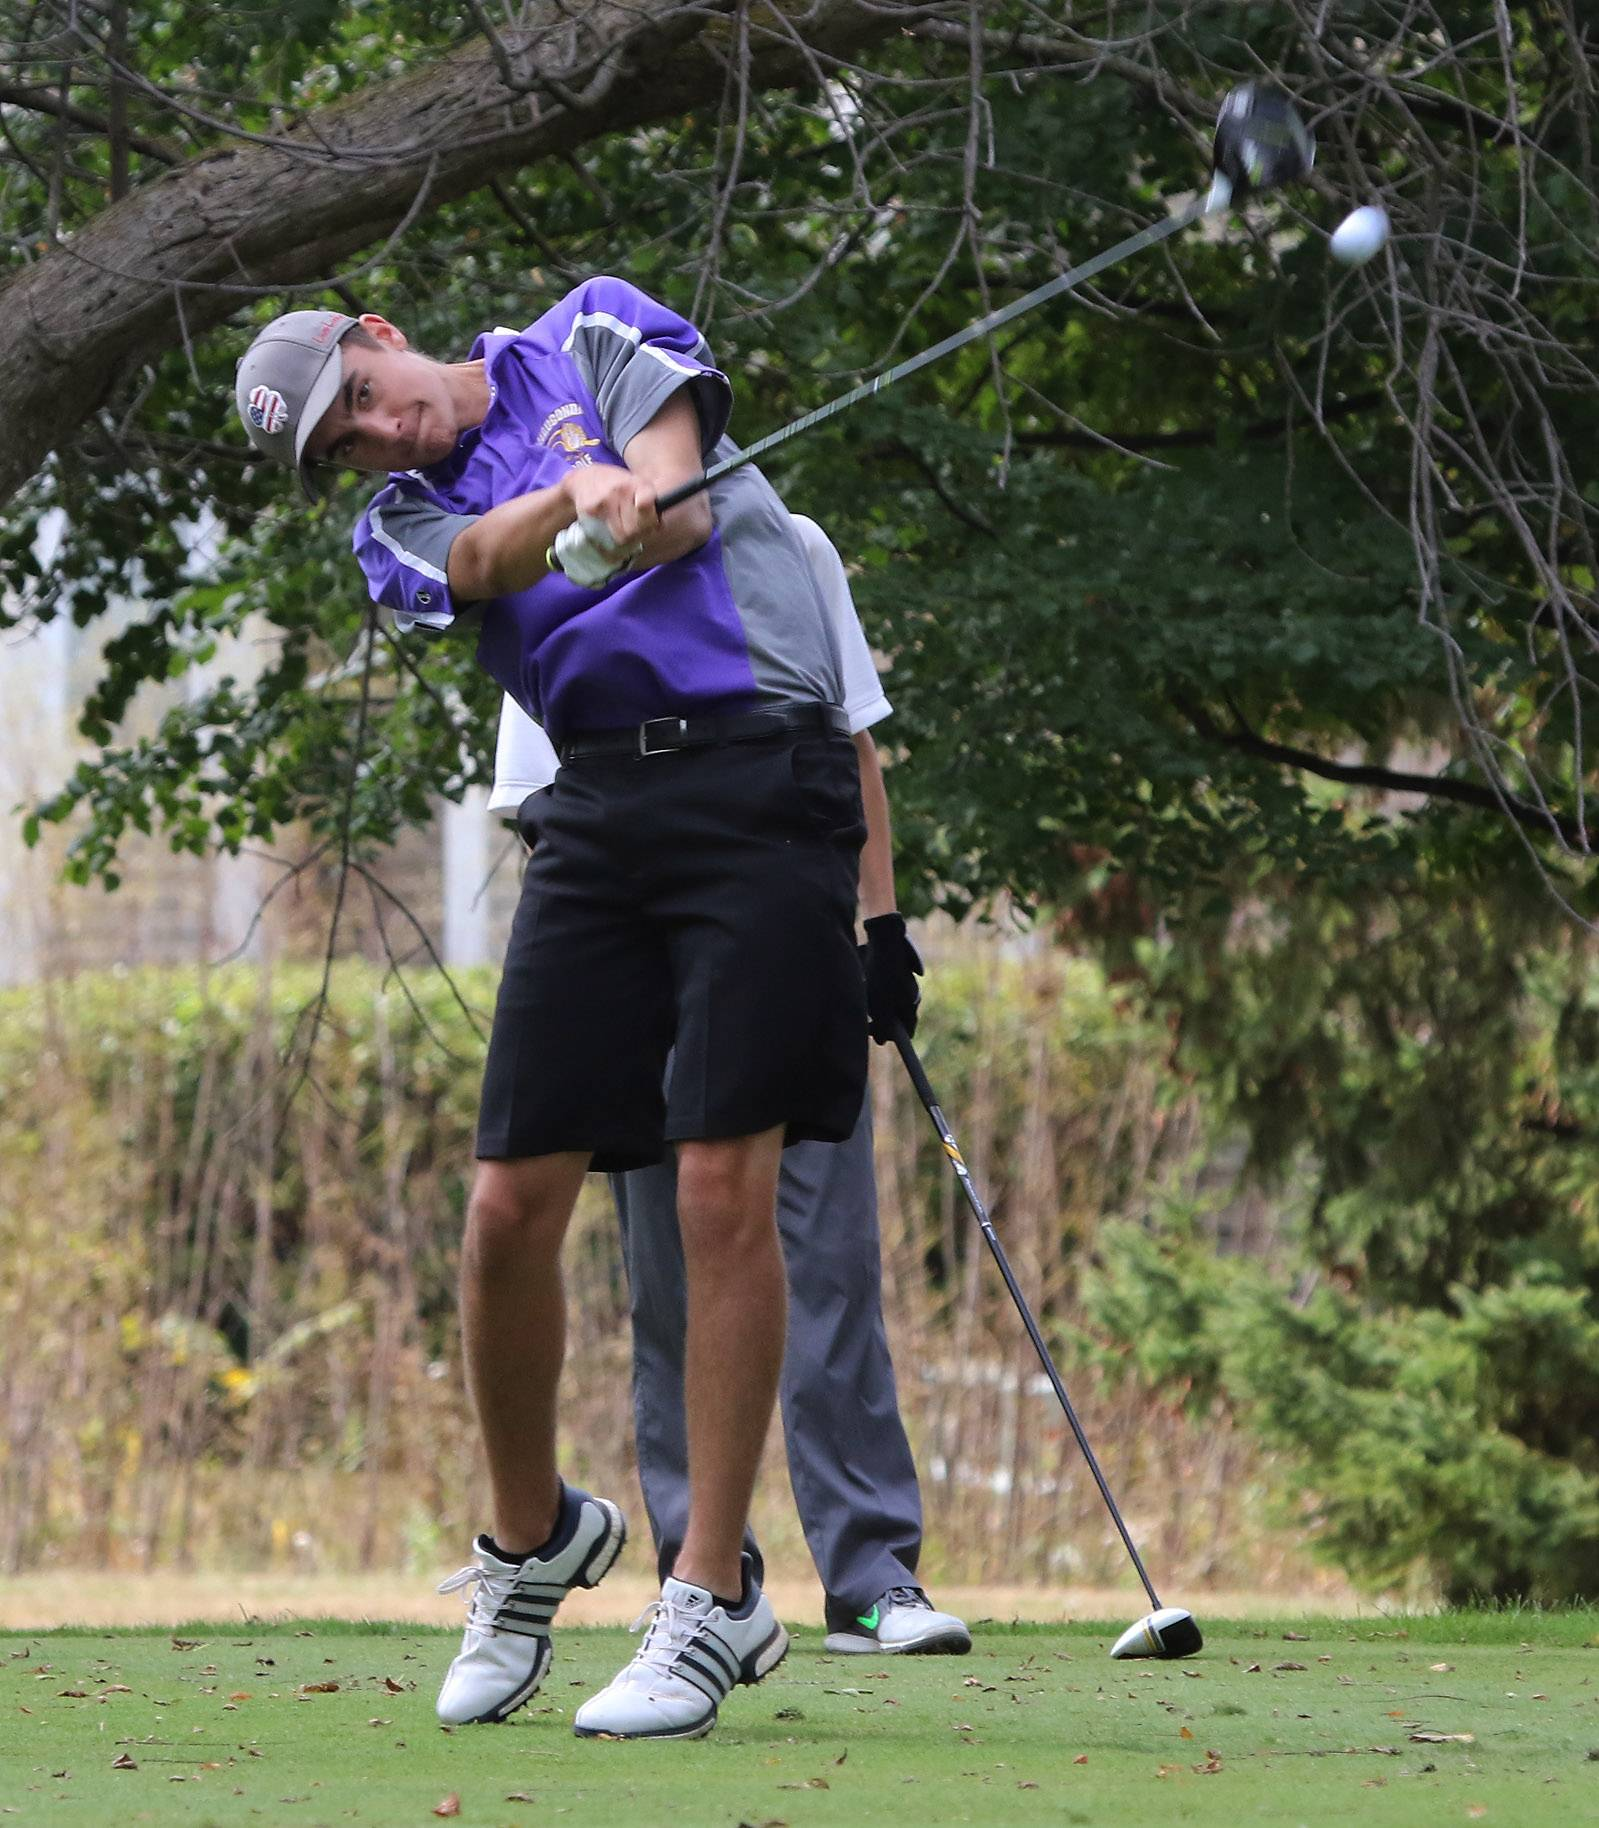 Wauconda's Matt Szmajda tees off on the 18th hole during the boys golf regional Tuesday at Midlane Golf Resort in Wadsworth.